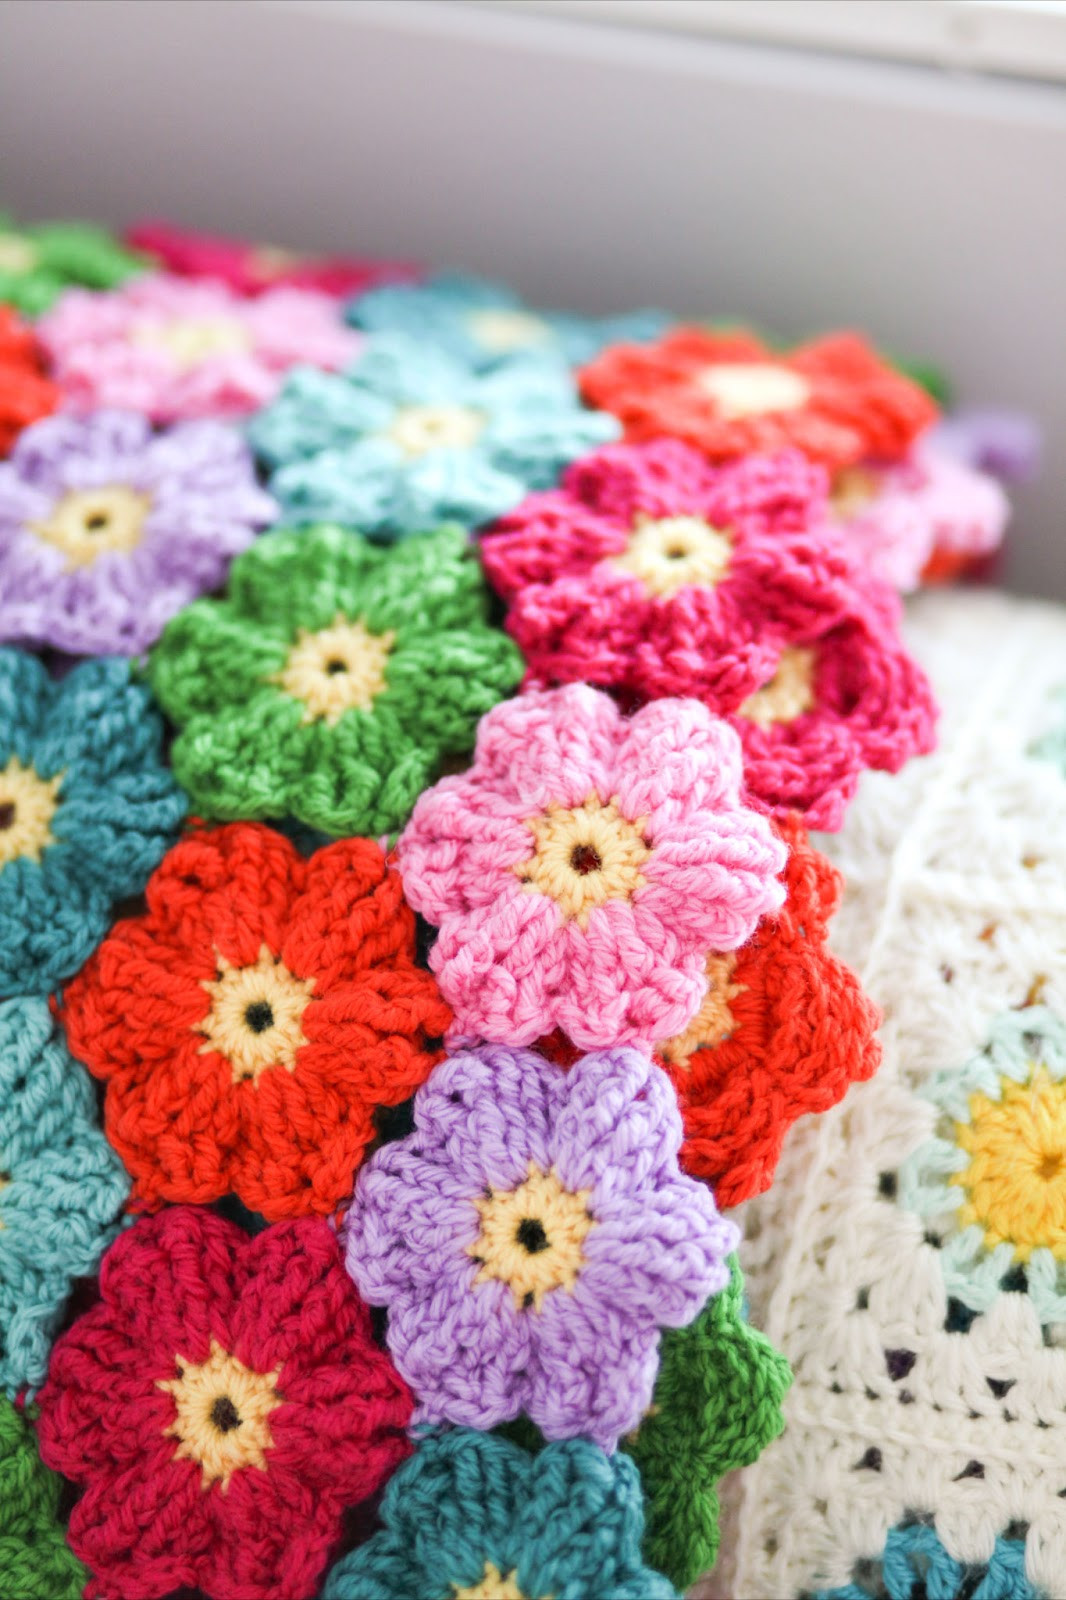 Felted Button Colorful Crochet Patterns Gratitude